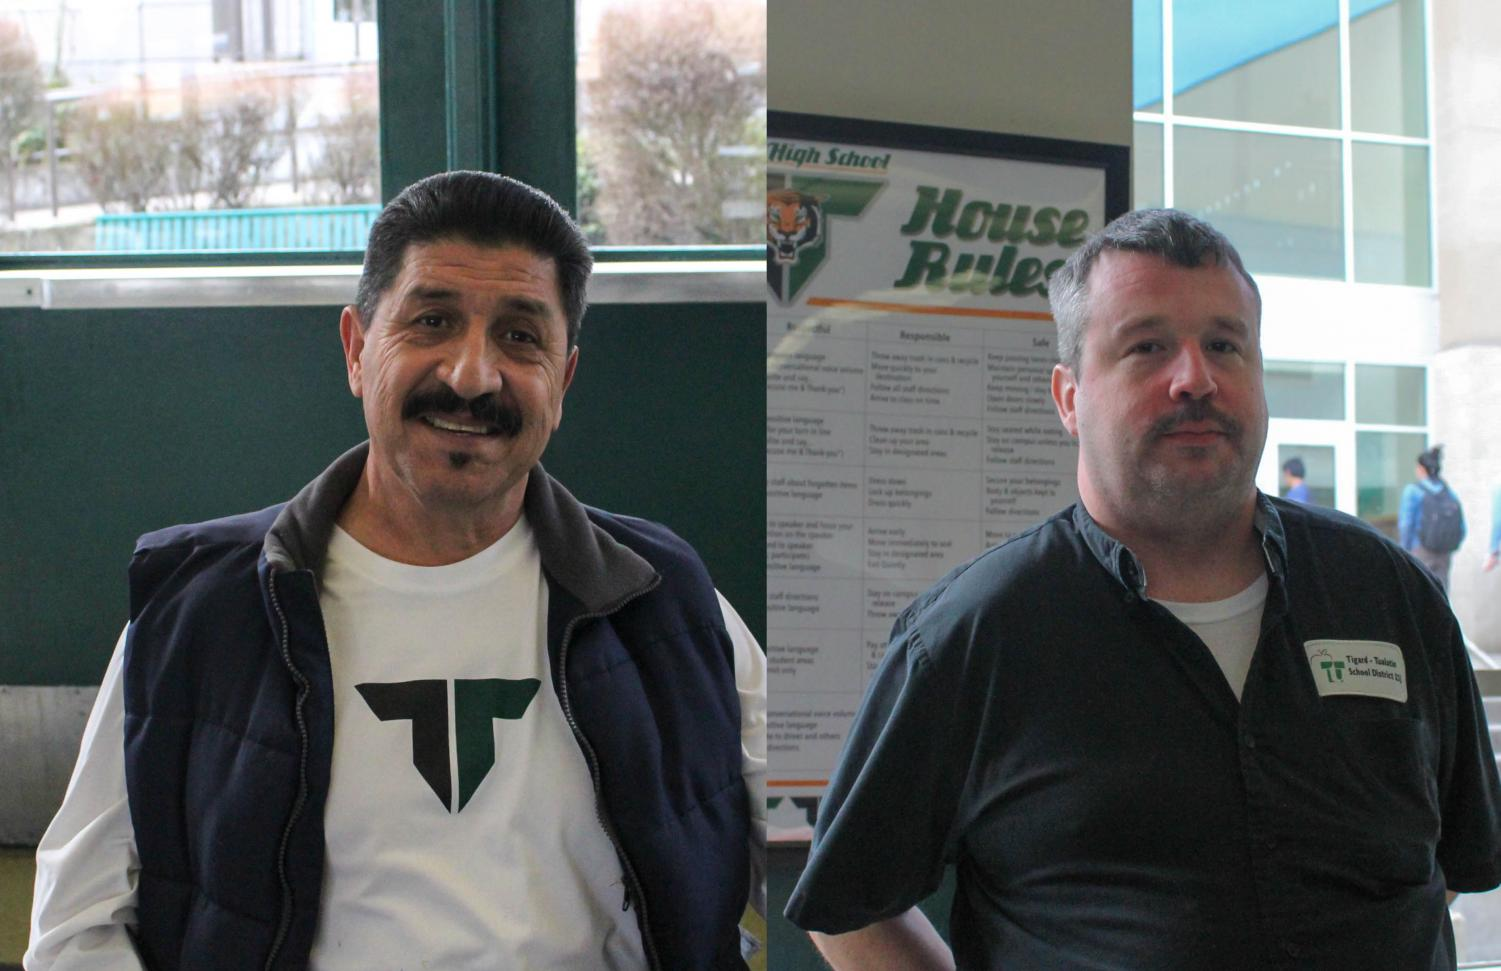 Gus Jaramillo and Josh Miller keep things clean around the school. But they have also served the school by connecting with students.